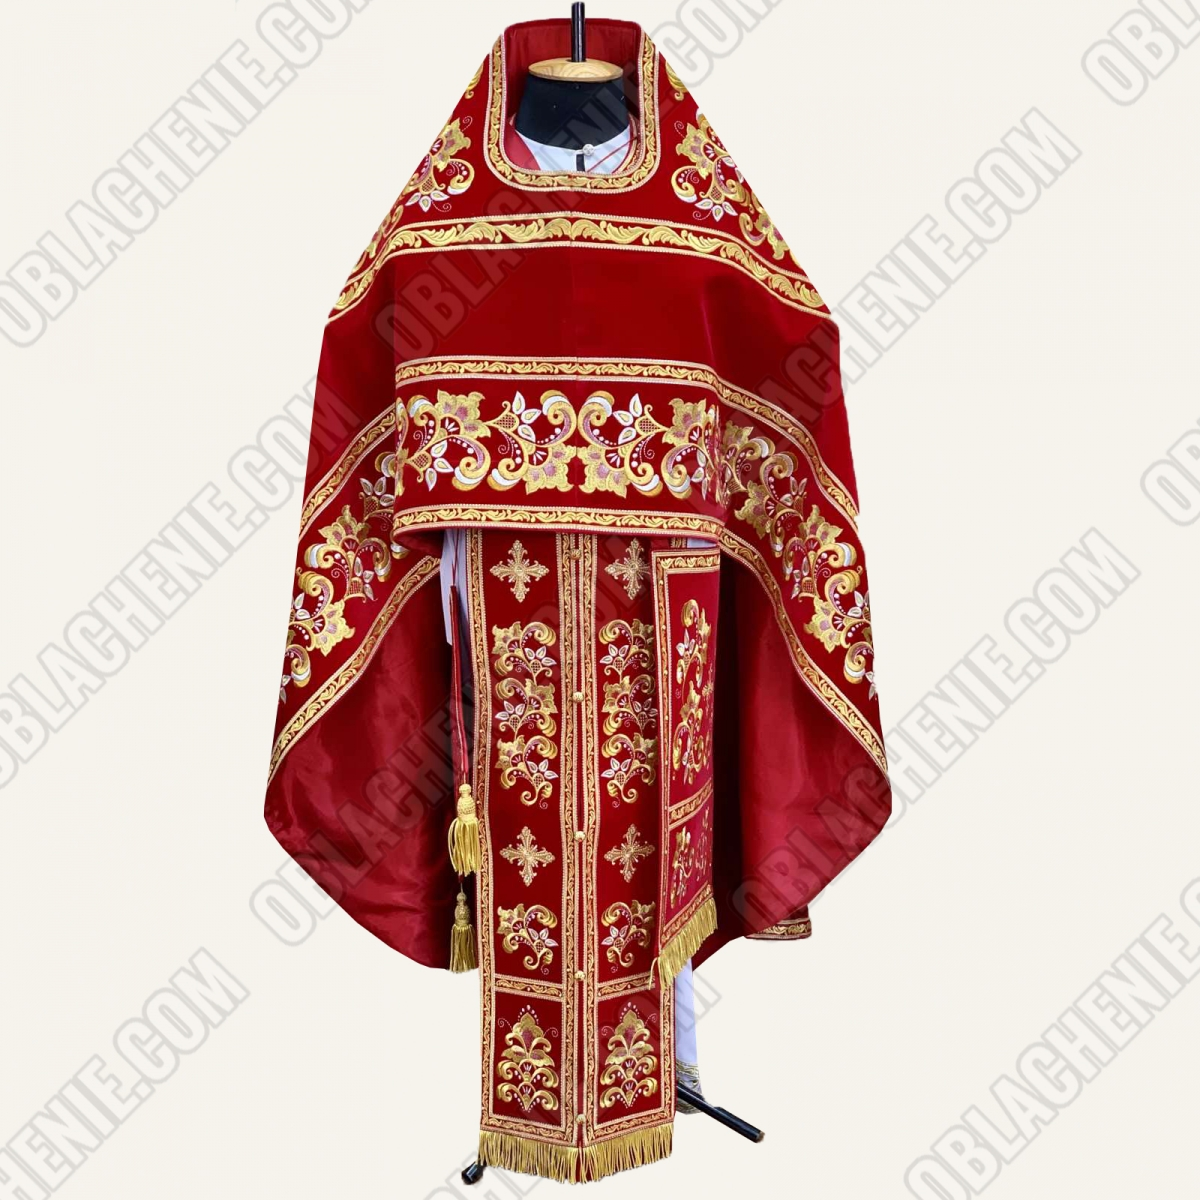 EMBROIDERED PRIEST'S VESTMENTS 11314